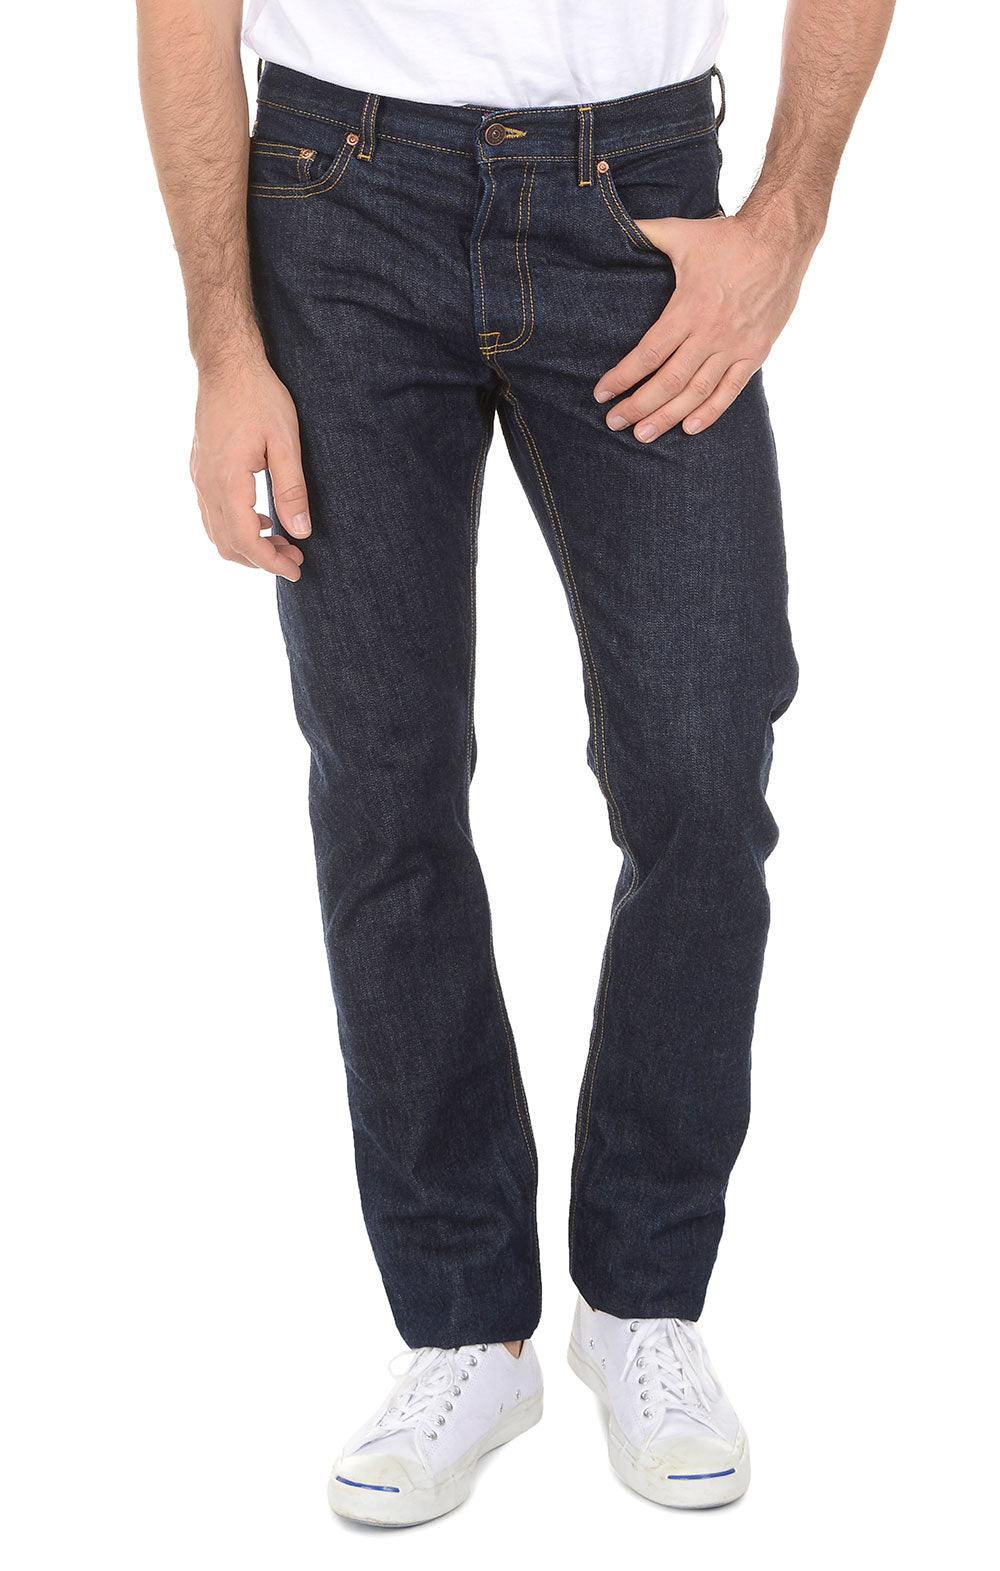 Made in USA Denim - Rinsed Selvedge - jachs